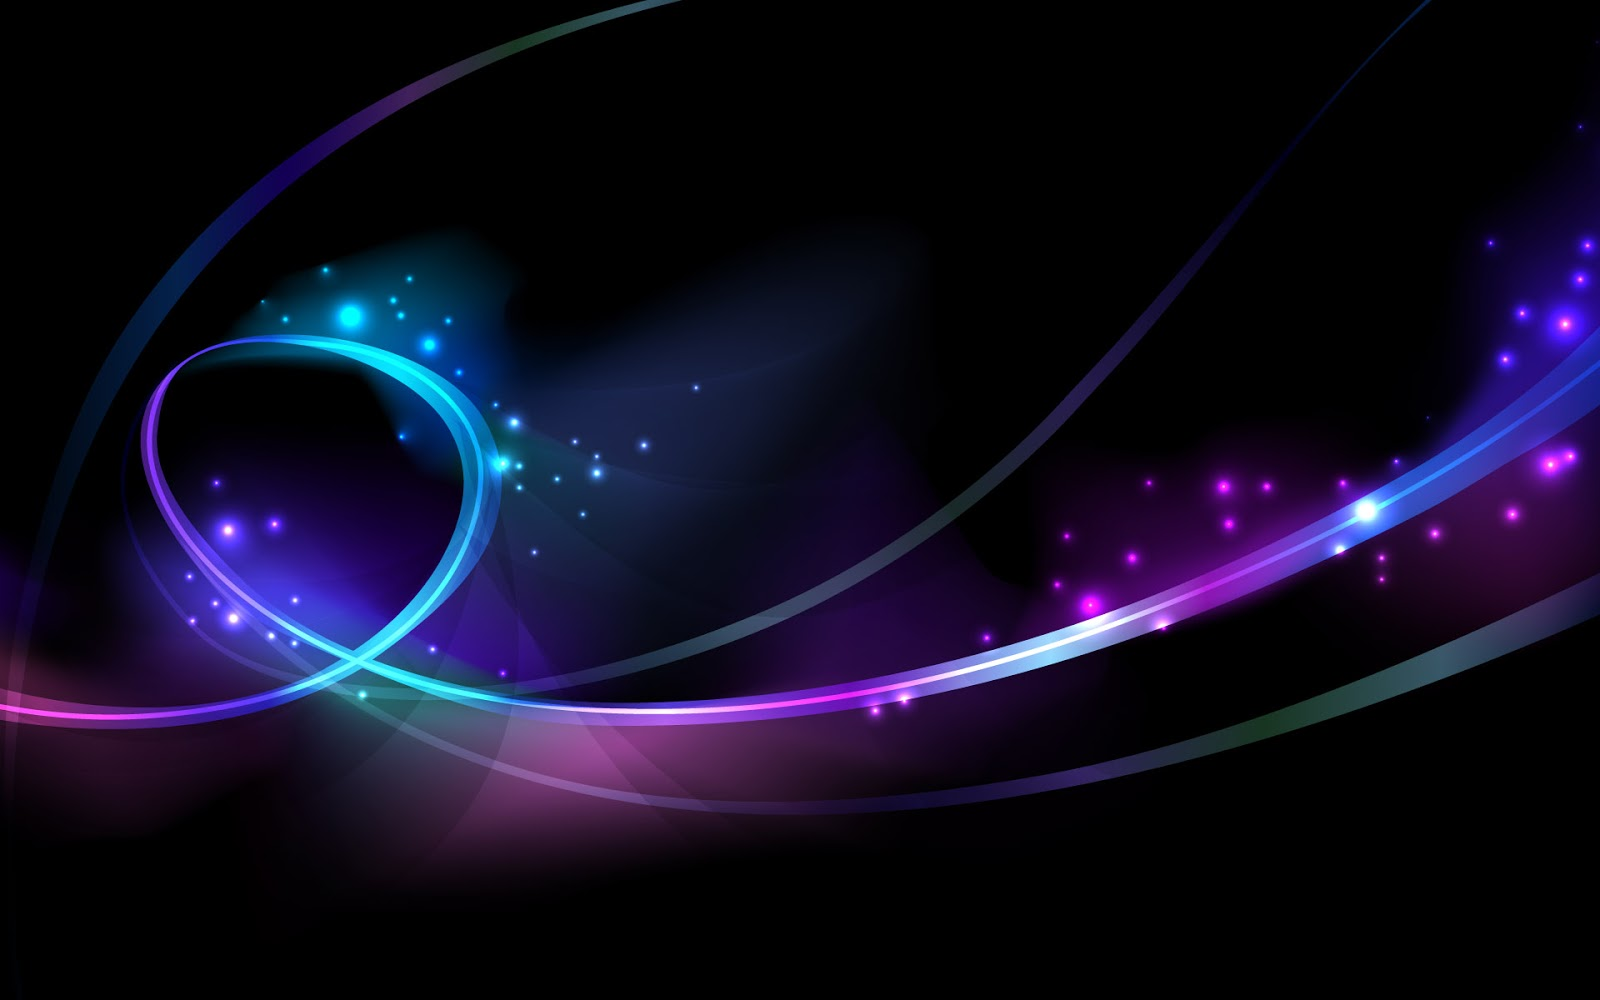 abstract cool wallpaper anime cool wallpapers cool apple wallpapers 1600x1000